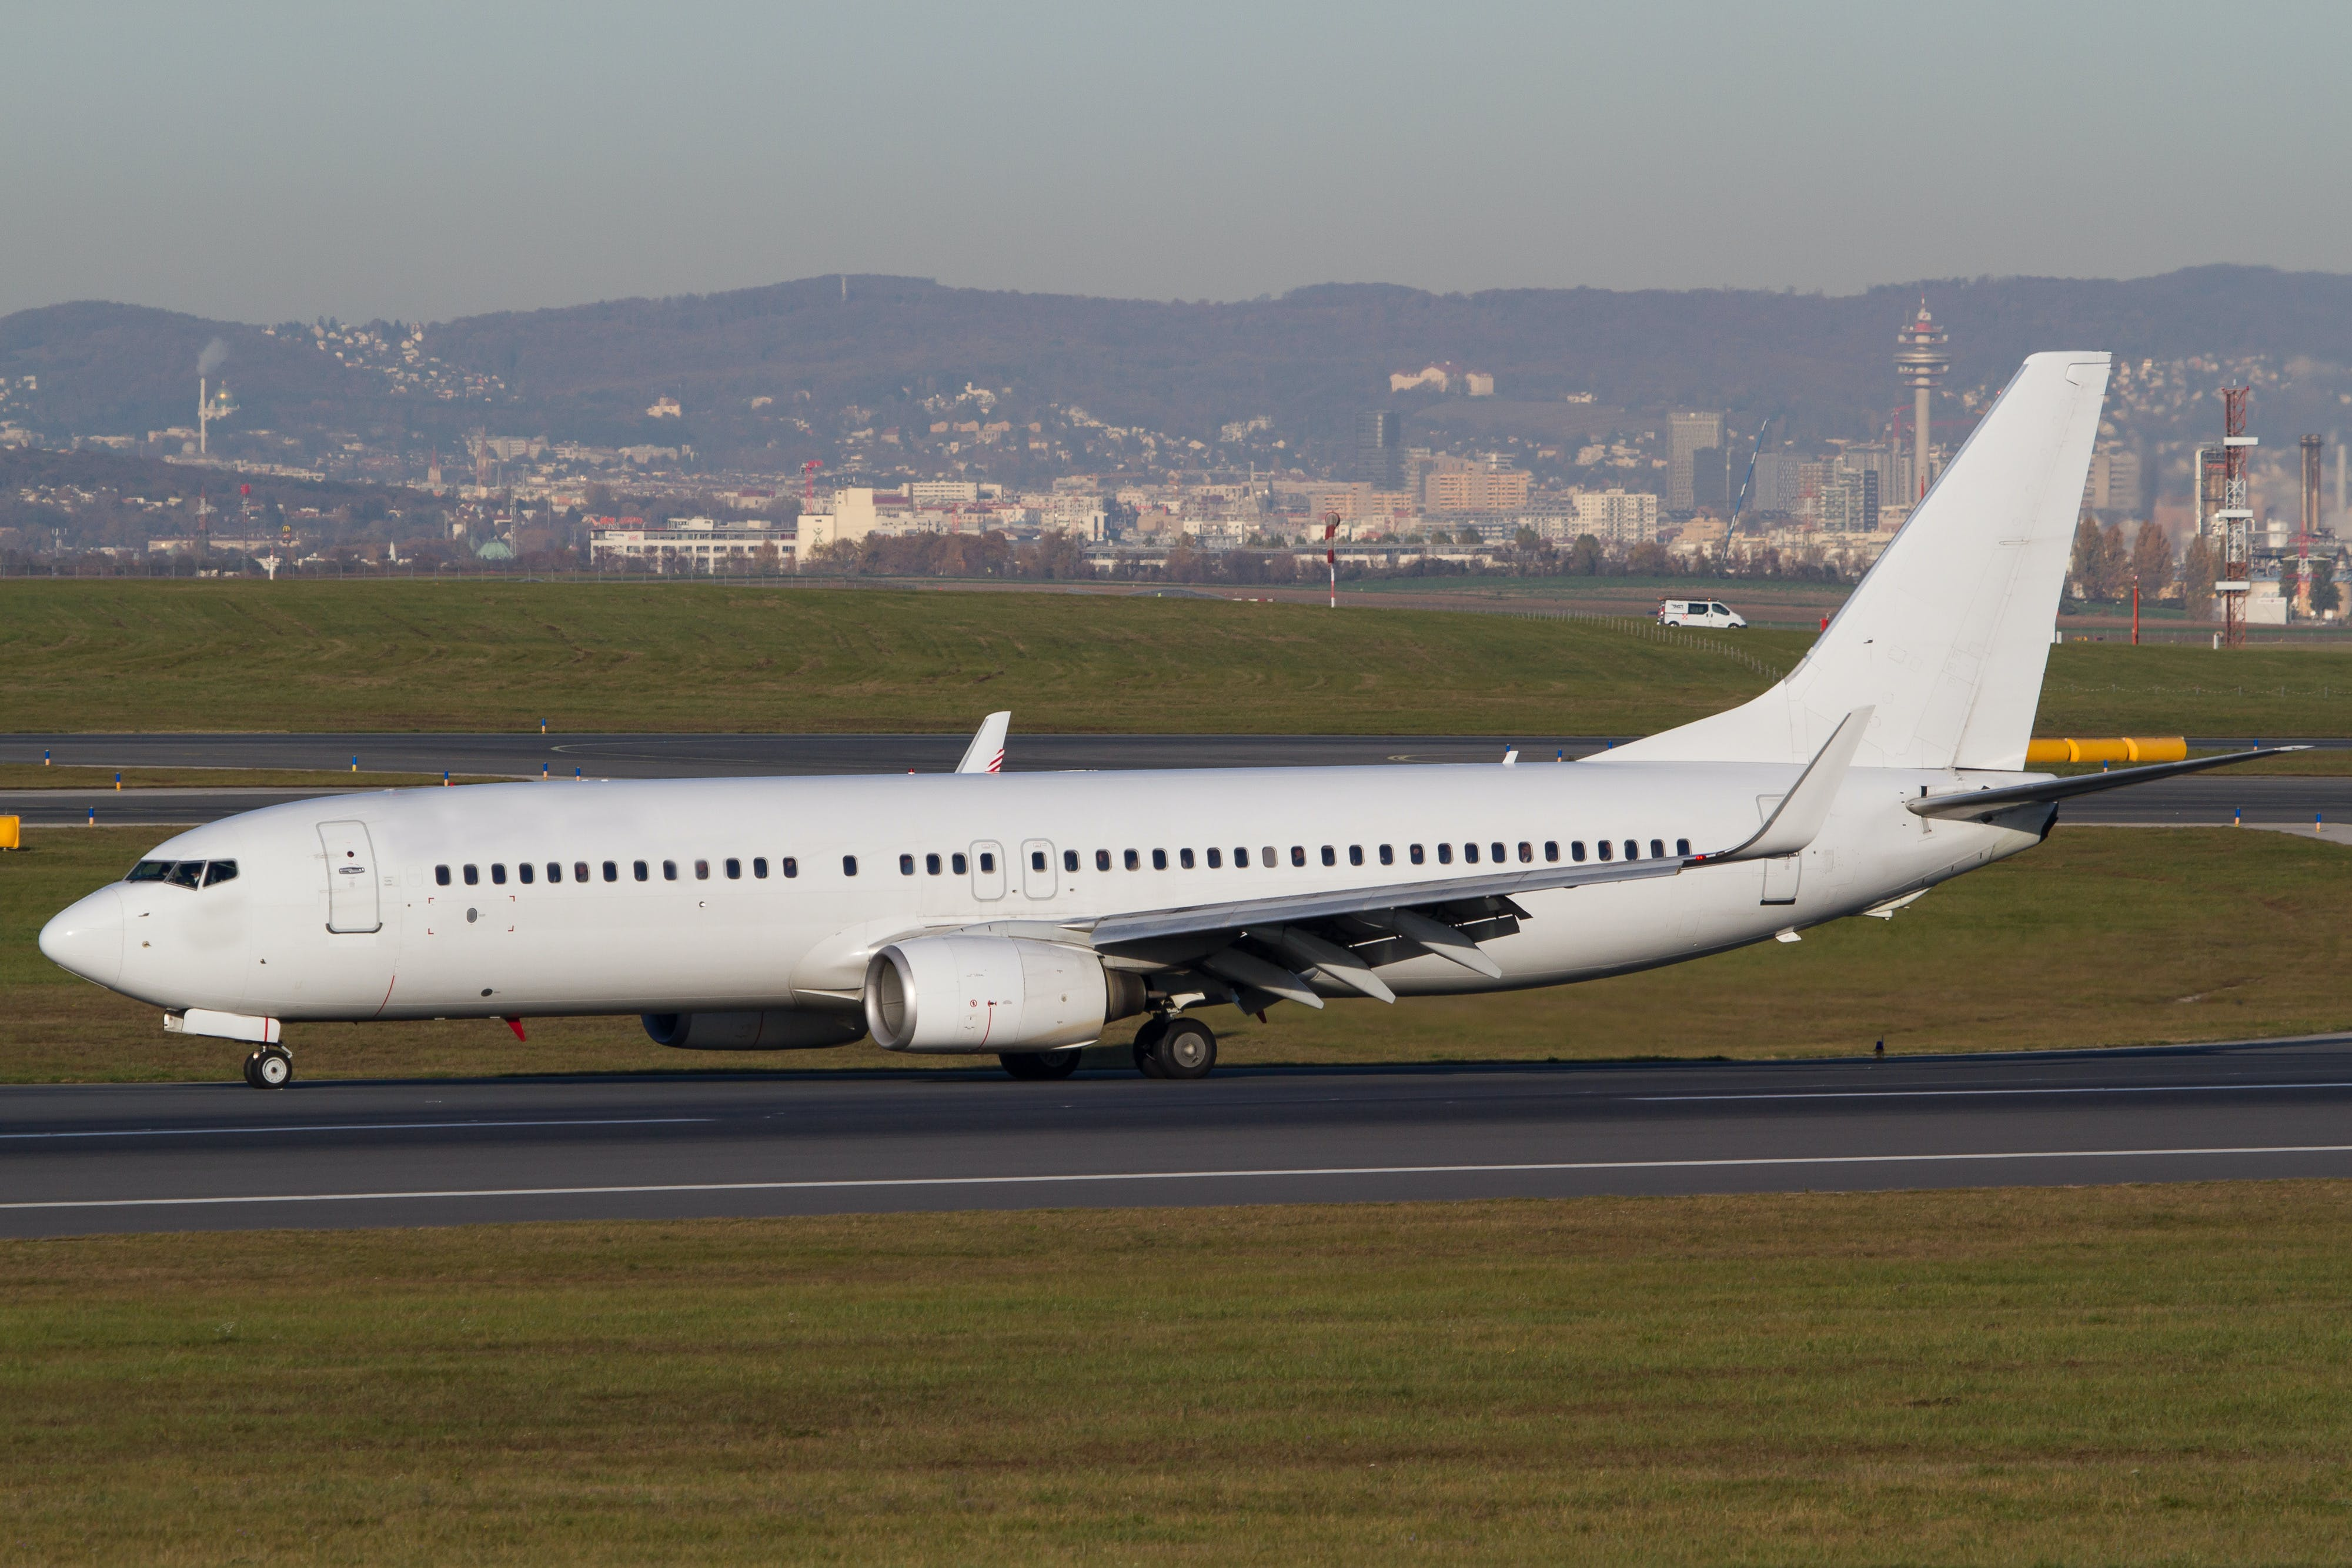 Swoop announced it would add a 10th Boeing 737-800 jet, like the one pictured in this stock photo, to its fleet this winter due to new travel bookings on par with pre-pandemic levels.